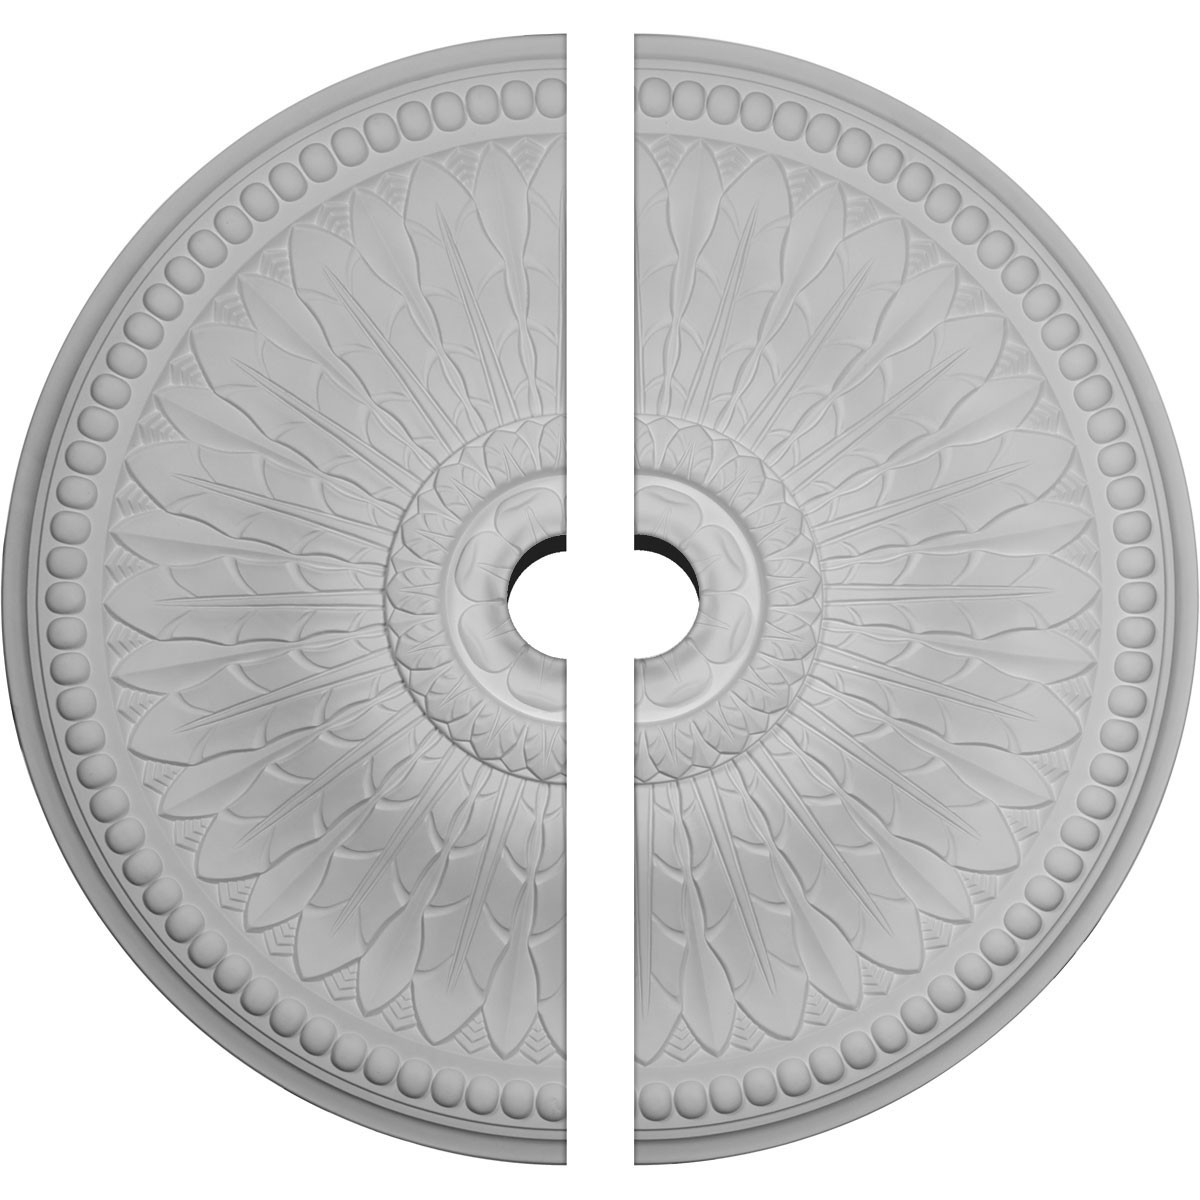 """EM-CM42SP2-04500 - 42 1/2""""OD x 4 1/2""""ID x 4 5/8""""P Springtime Ceiling Medallion, Two Piece (Fits Canopies up to 9 3/8"""")"""